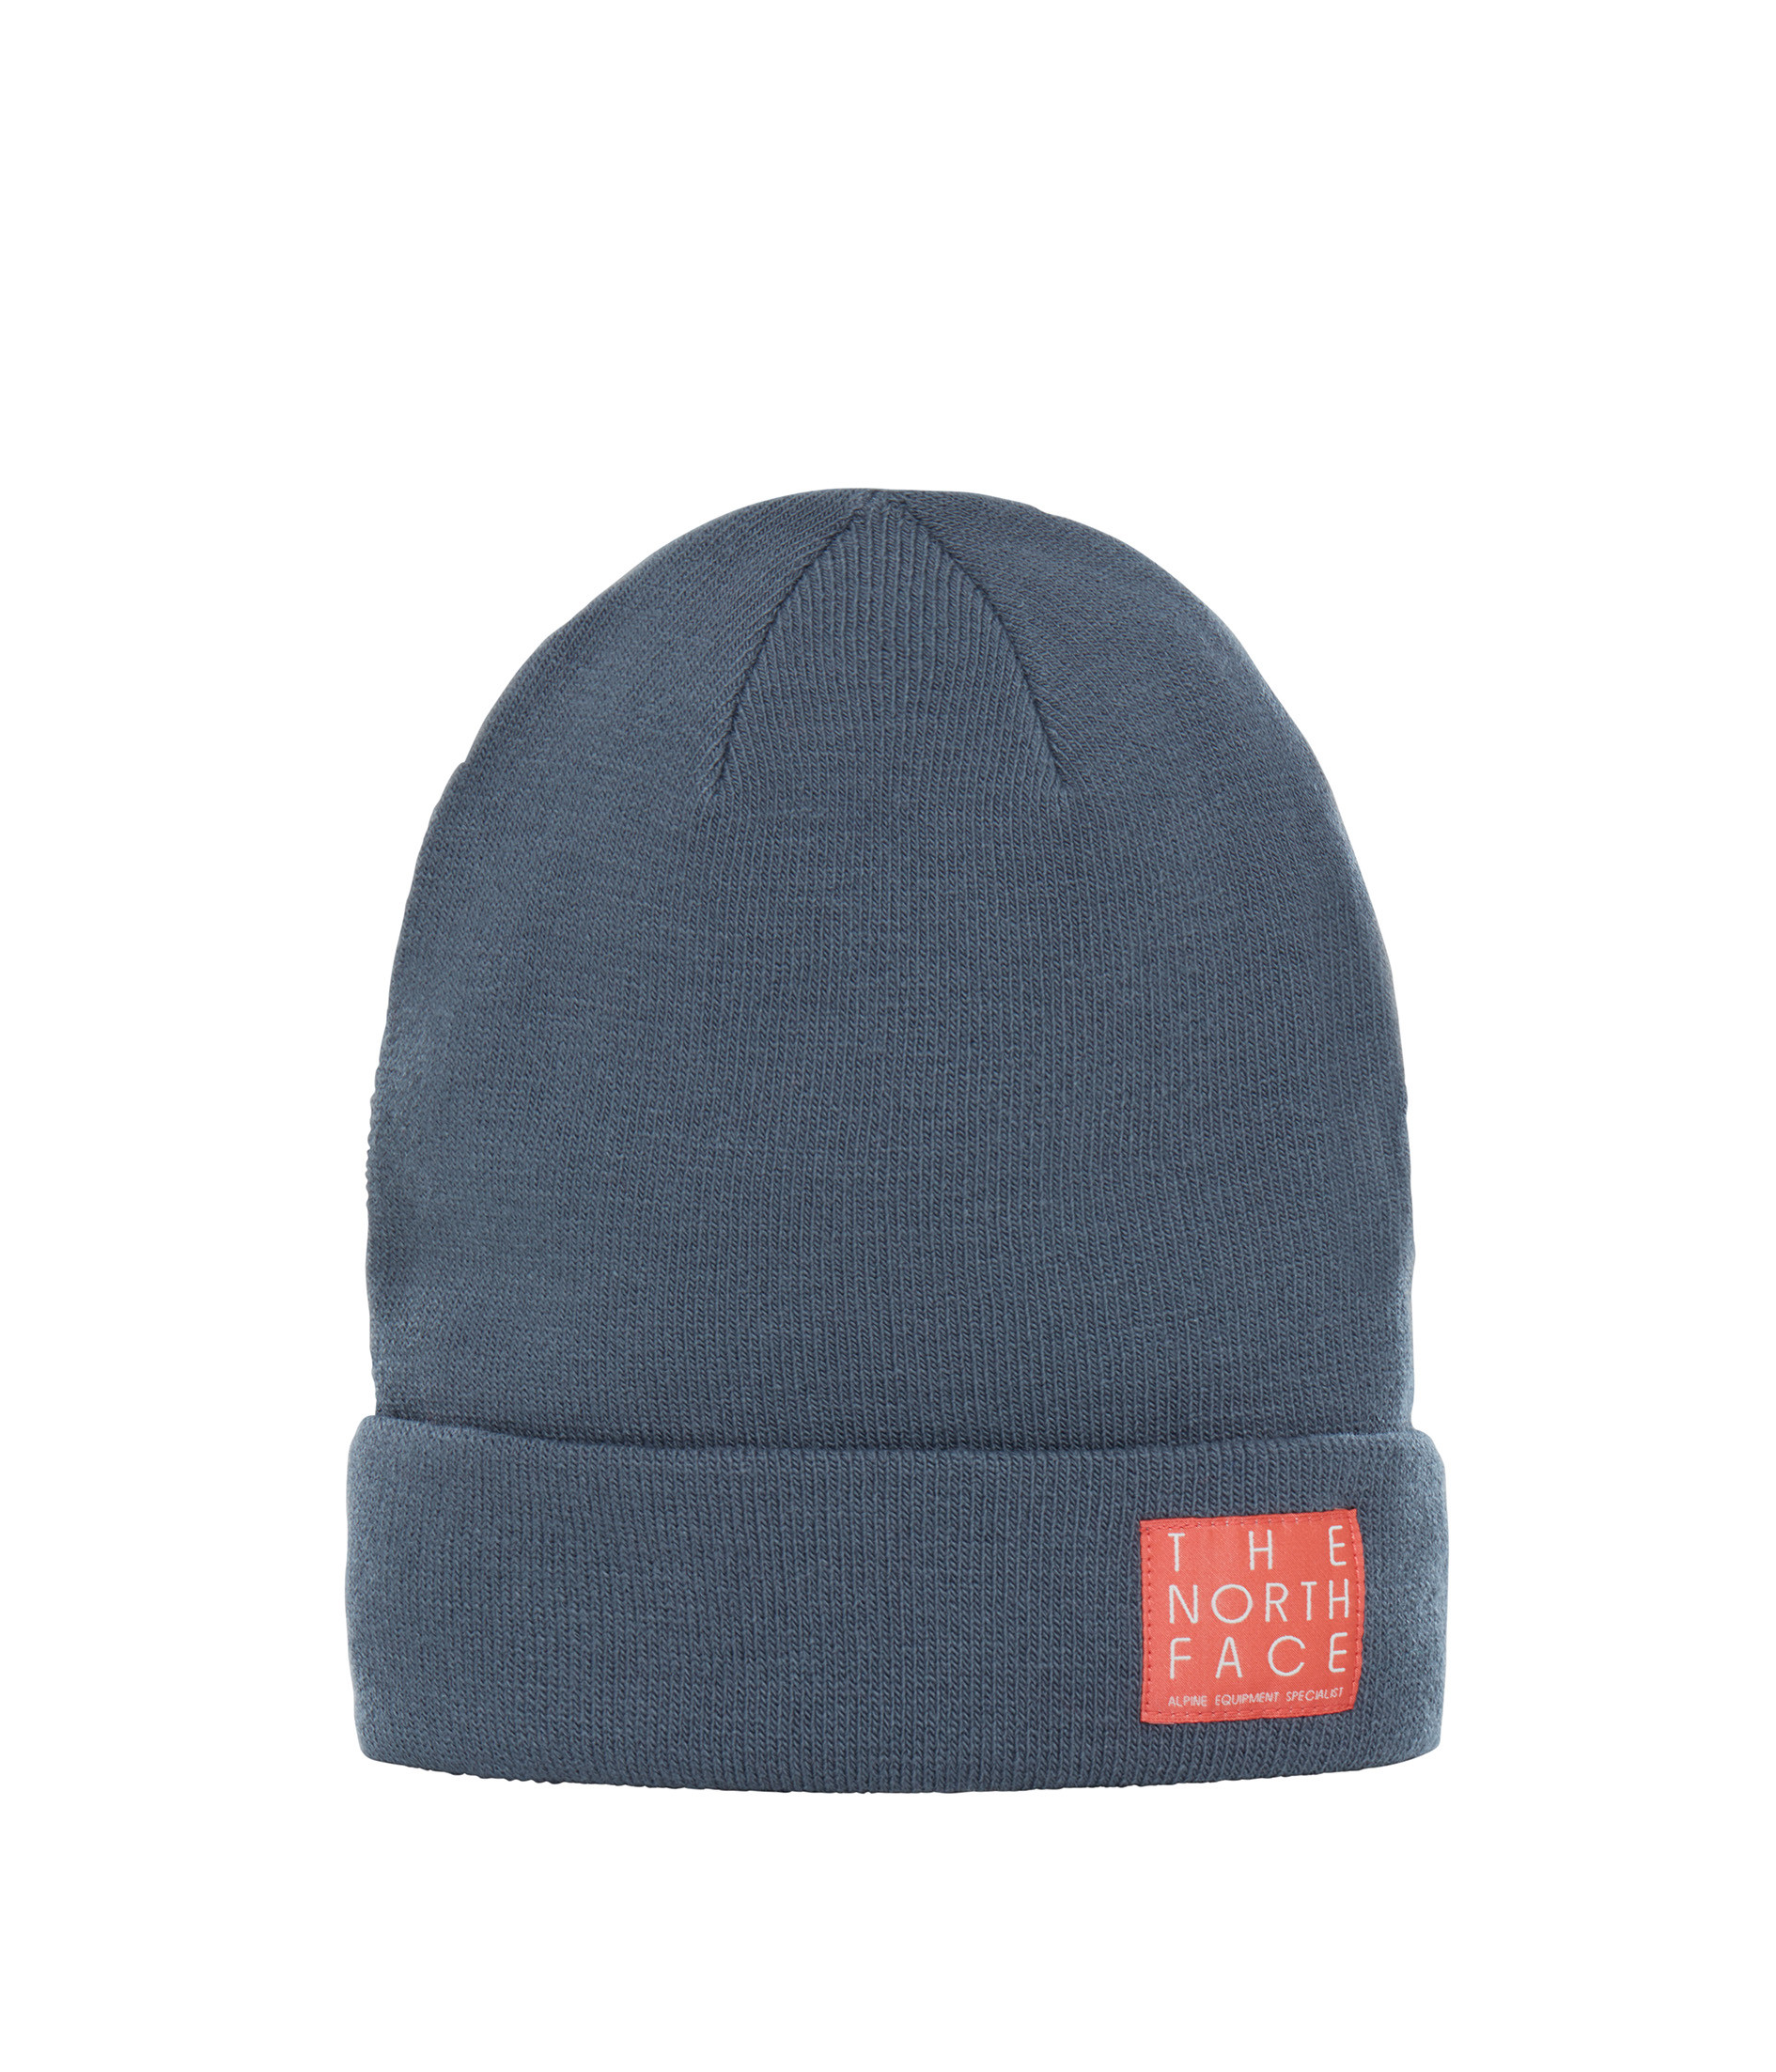 The North Face Dock Worker Beanie téli sapka - 2017-es modell - Biq ... 7e538a6b51